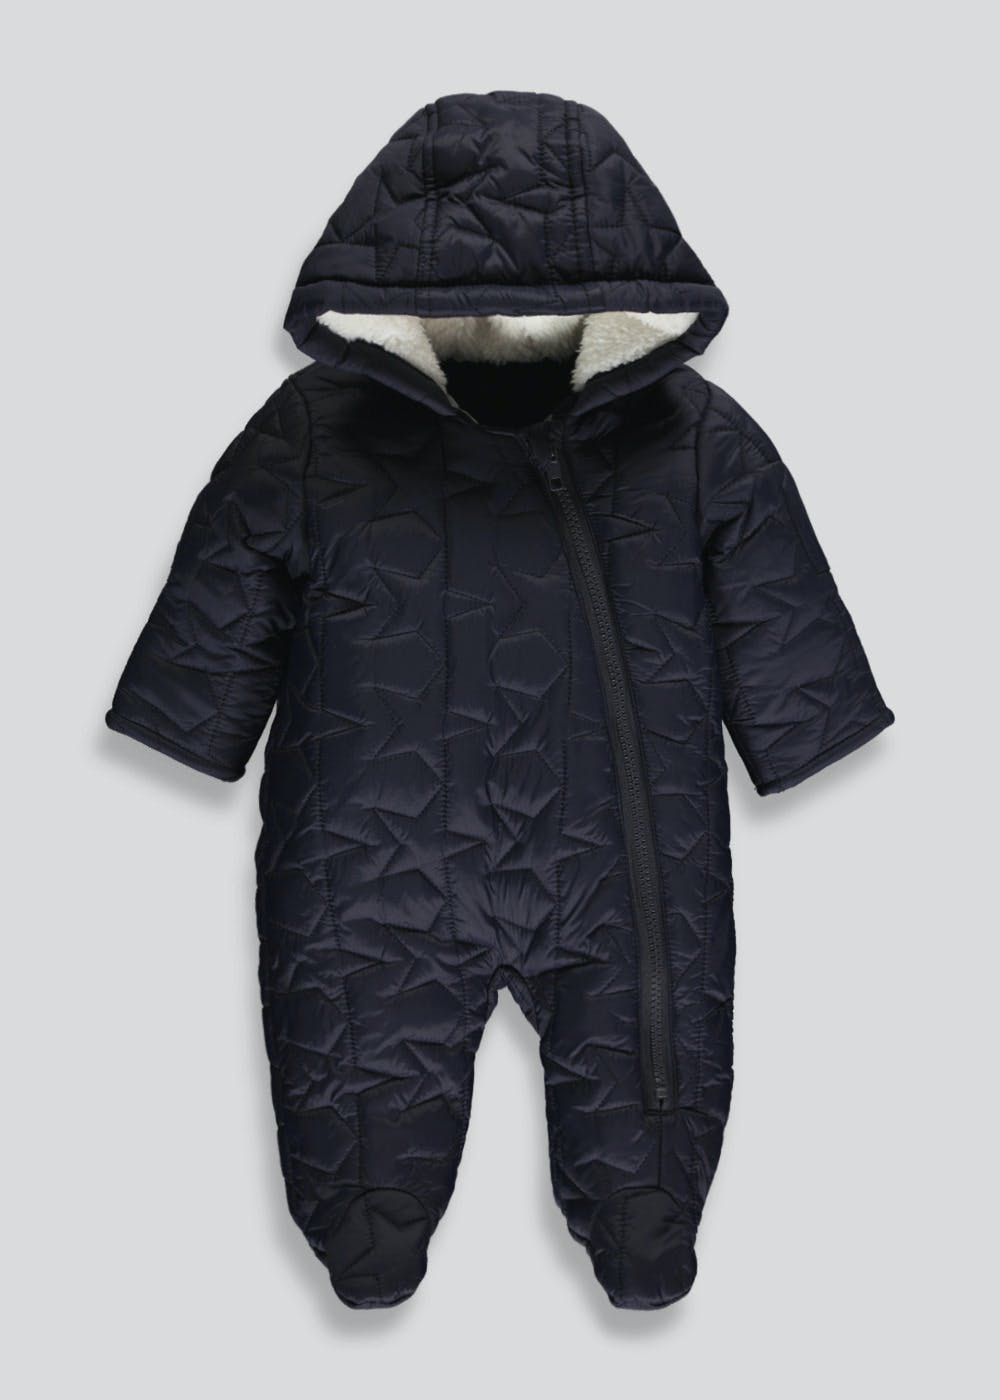 unisex quilted snowsuit tiny baby18mths